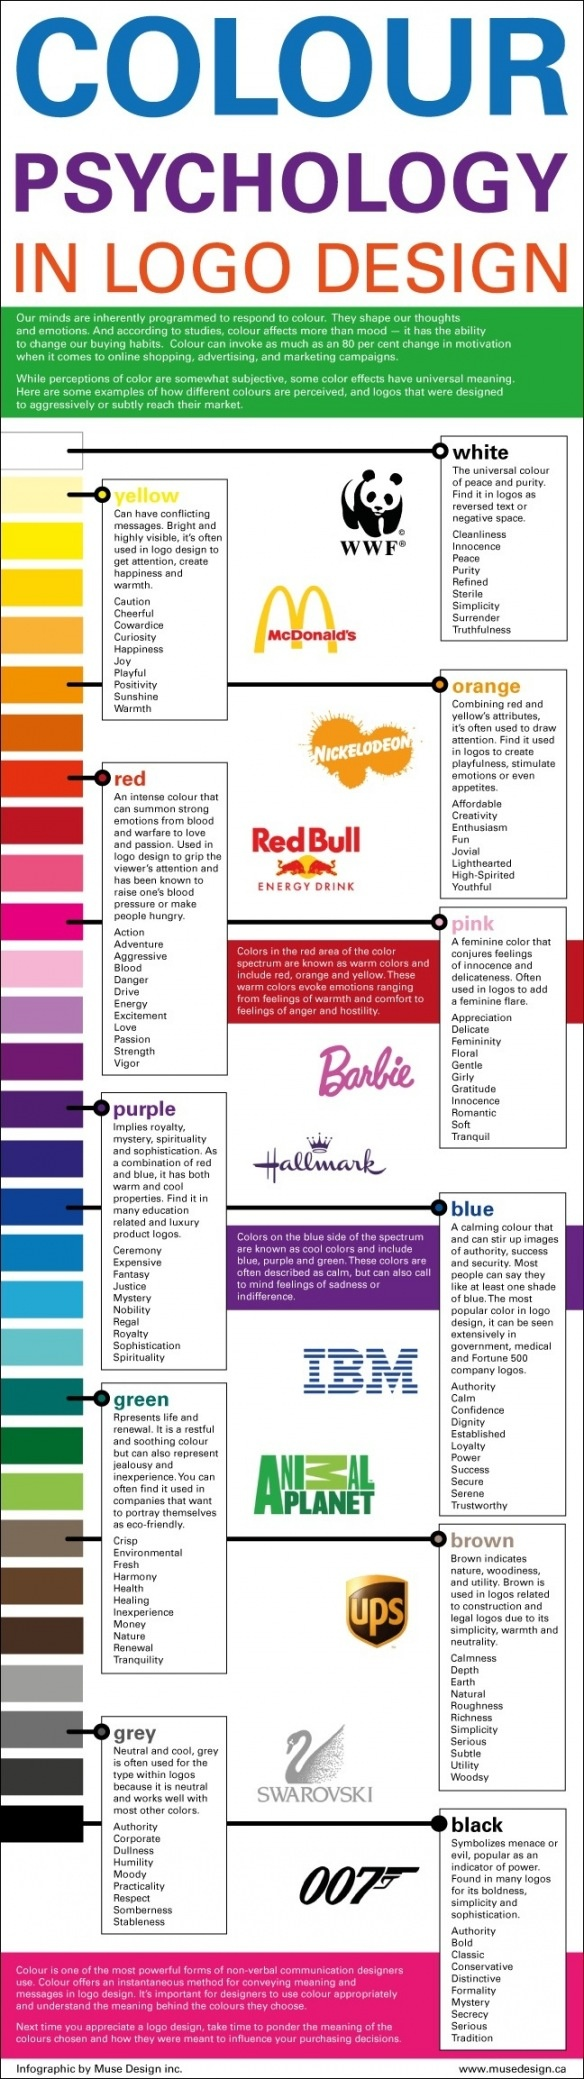 Colour Psychology in logo design.